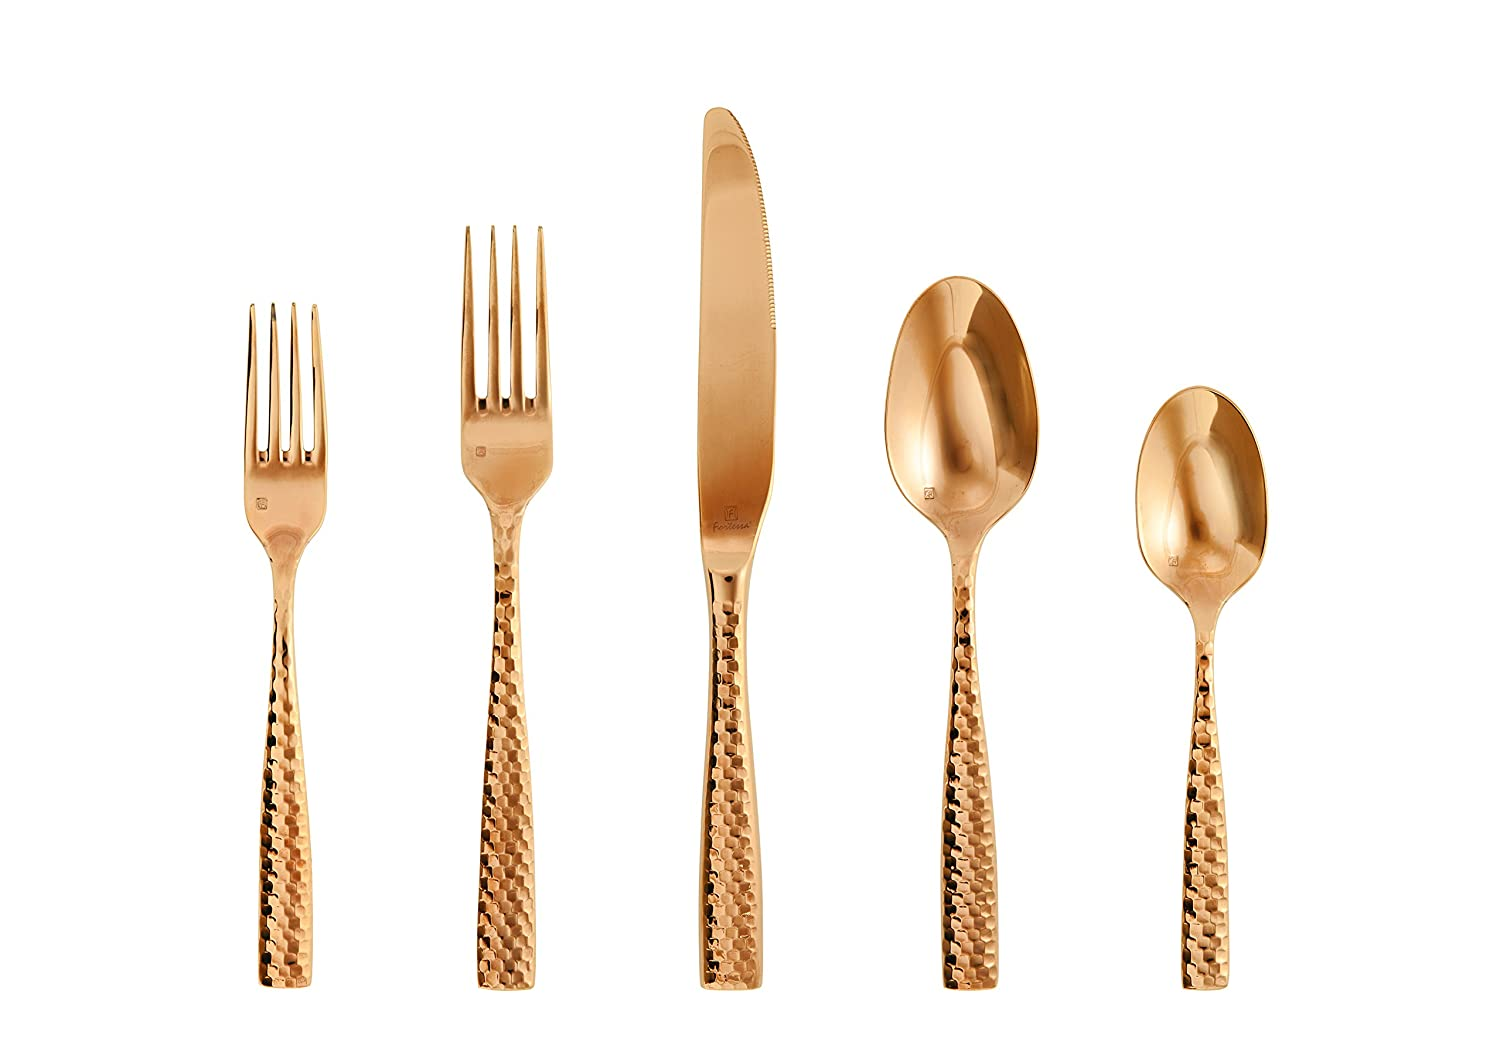 Fortessa Lucca Faceted 18/10 Stainless Steel Flatware, 20 Piece Place Setting, Service for 4, Brushed Gold 5PPS-102FC9B-20